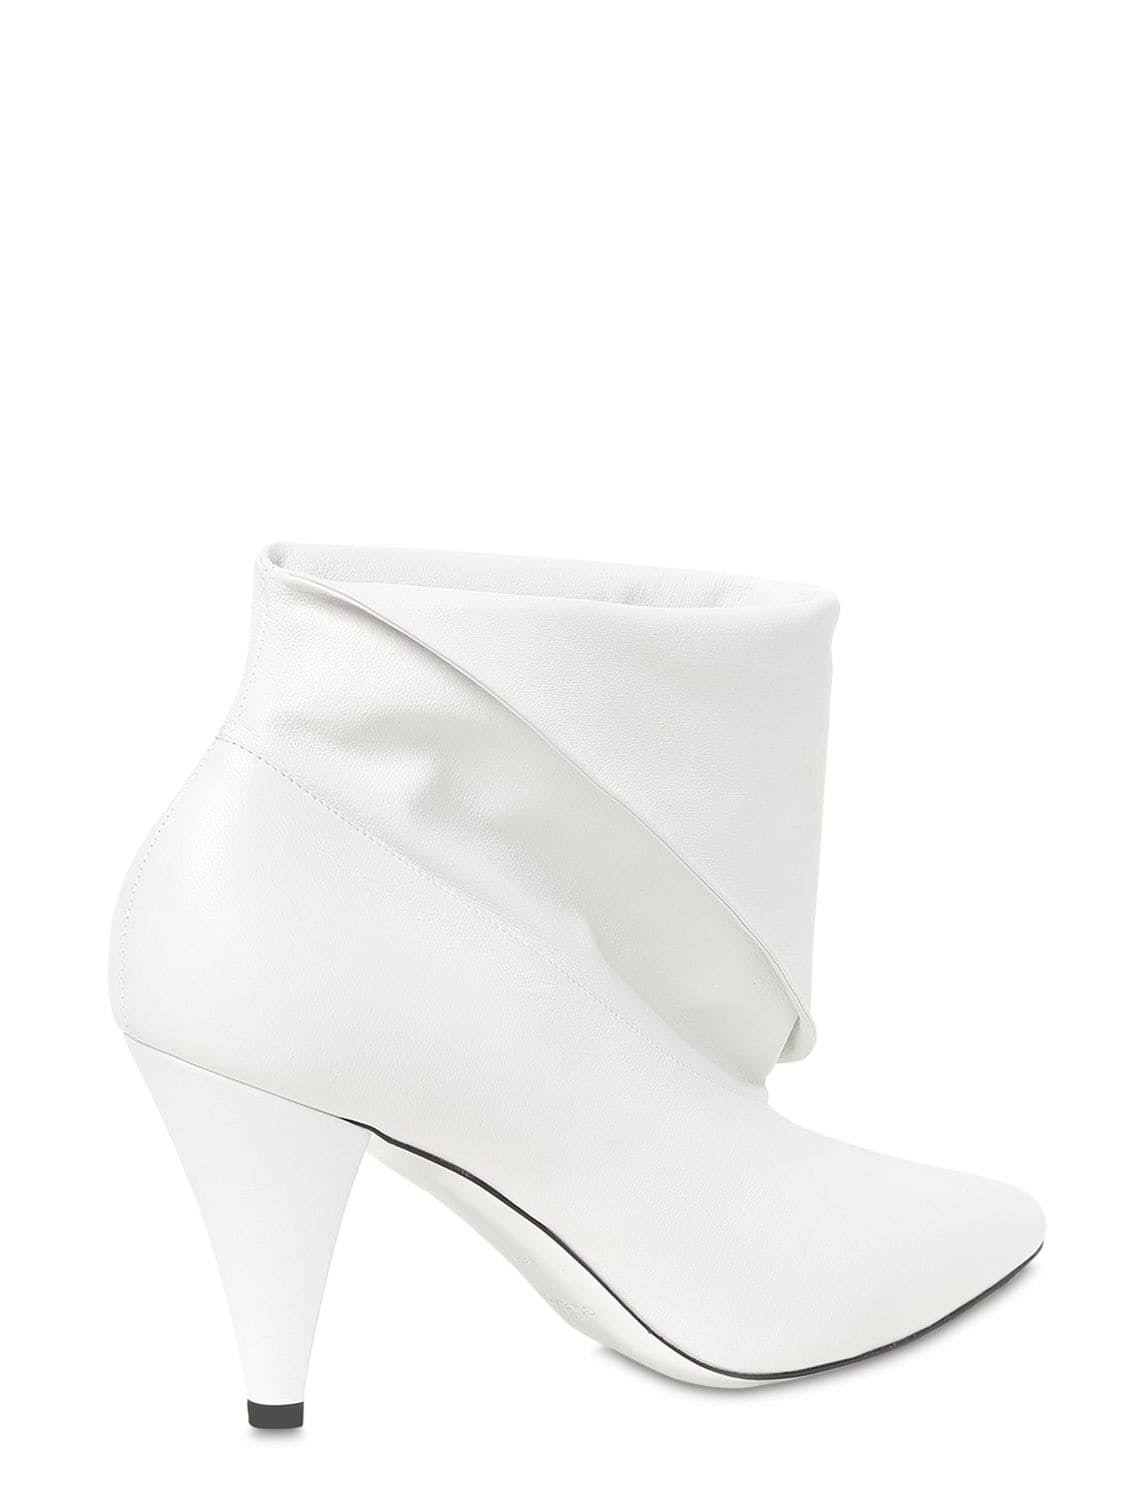 GivenchyStivaletti 37 donna in bianco 5 pelle 80mm 29DEIWH